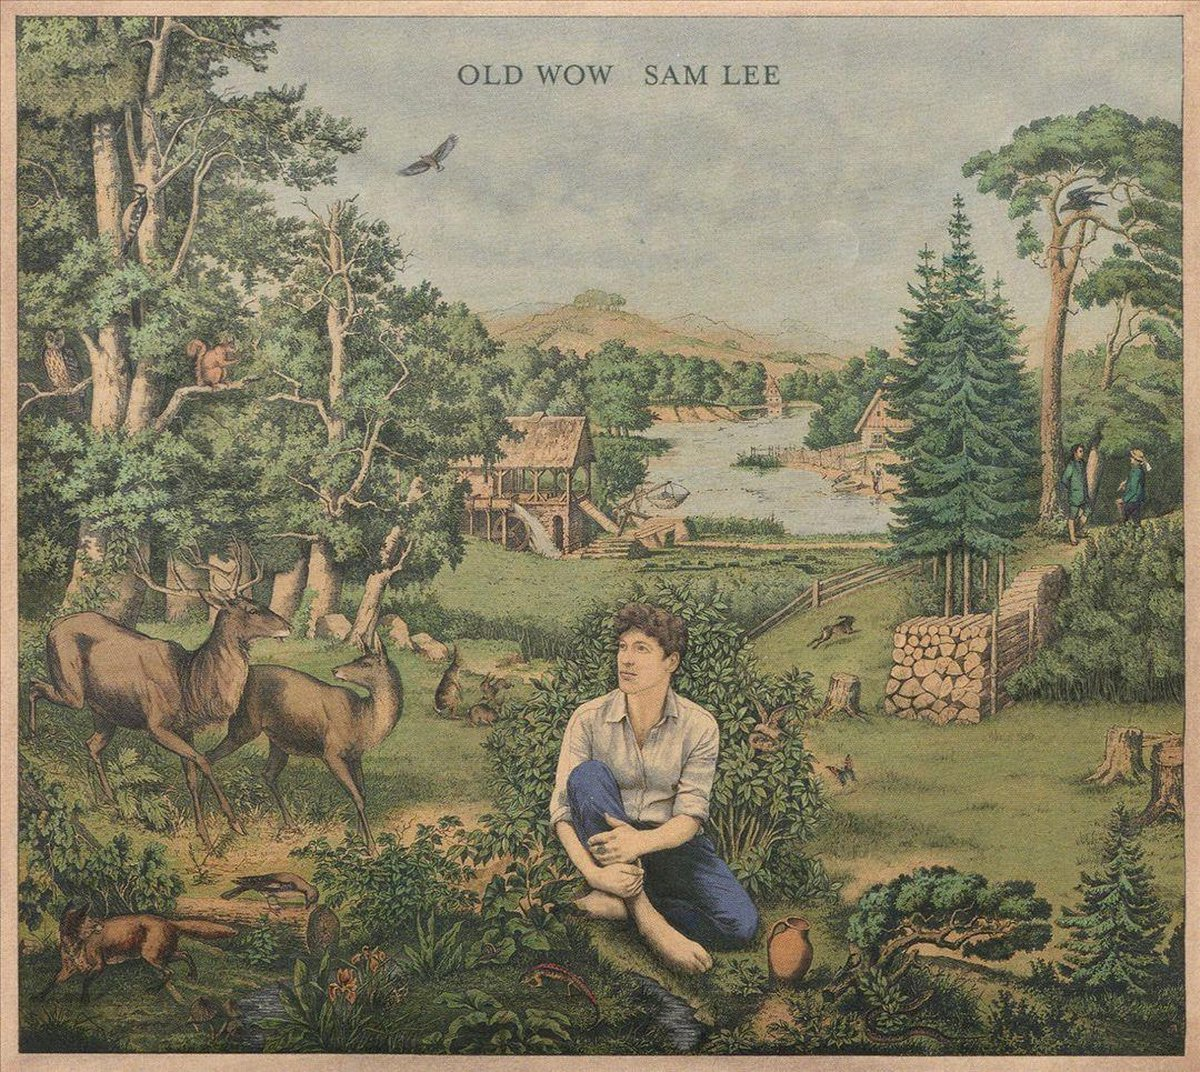 bol.com | Old Wow, Sam Lee | CD (album) | Muziek